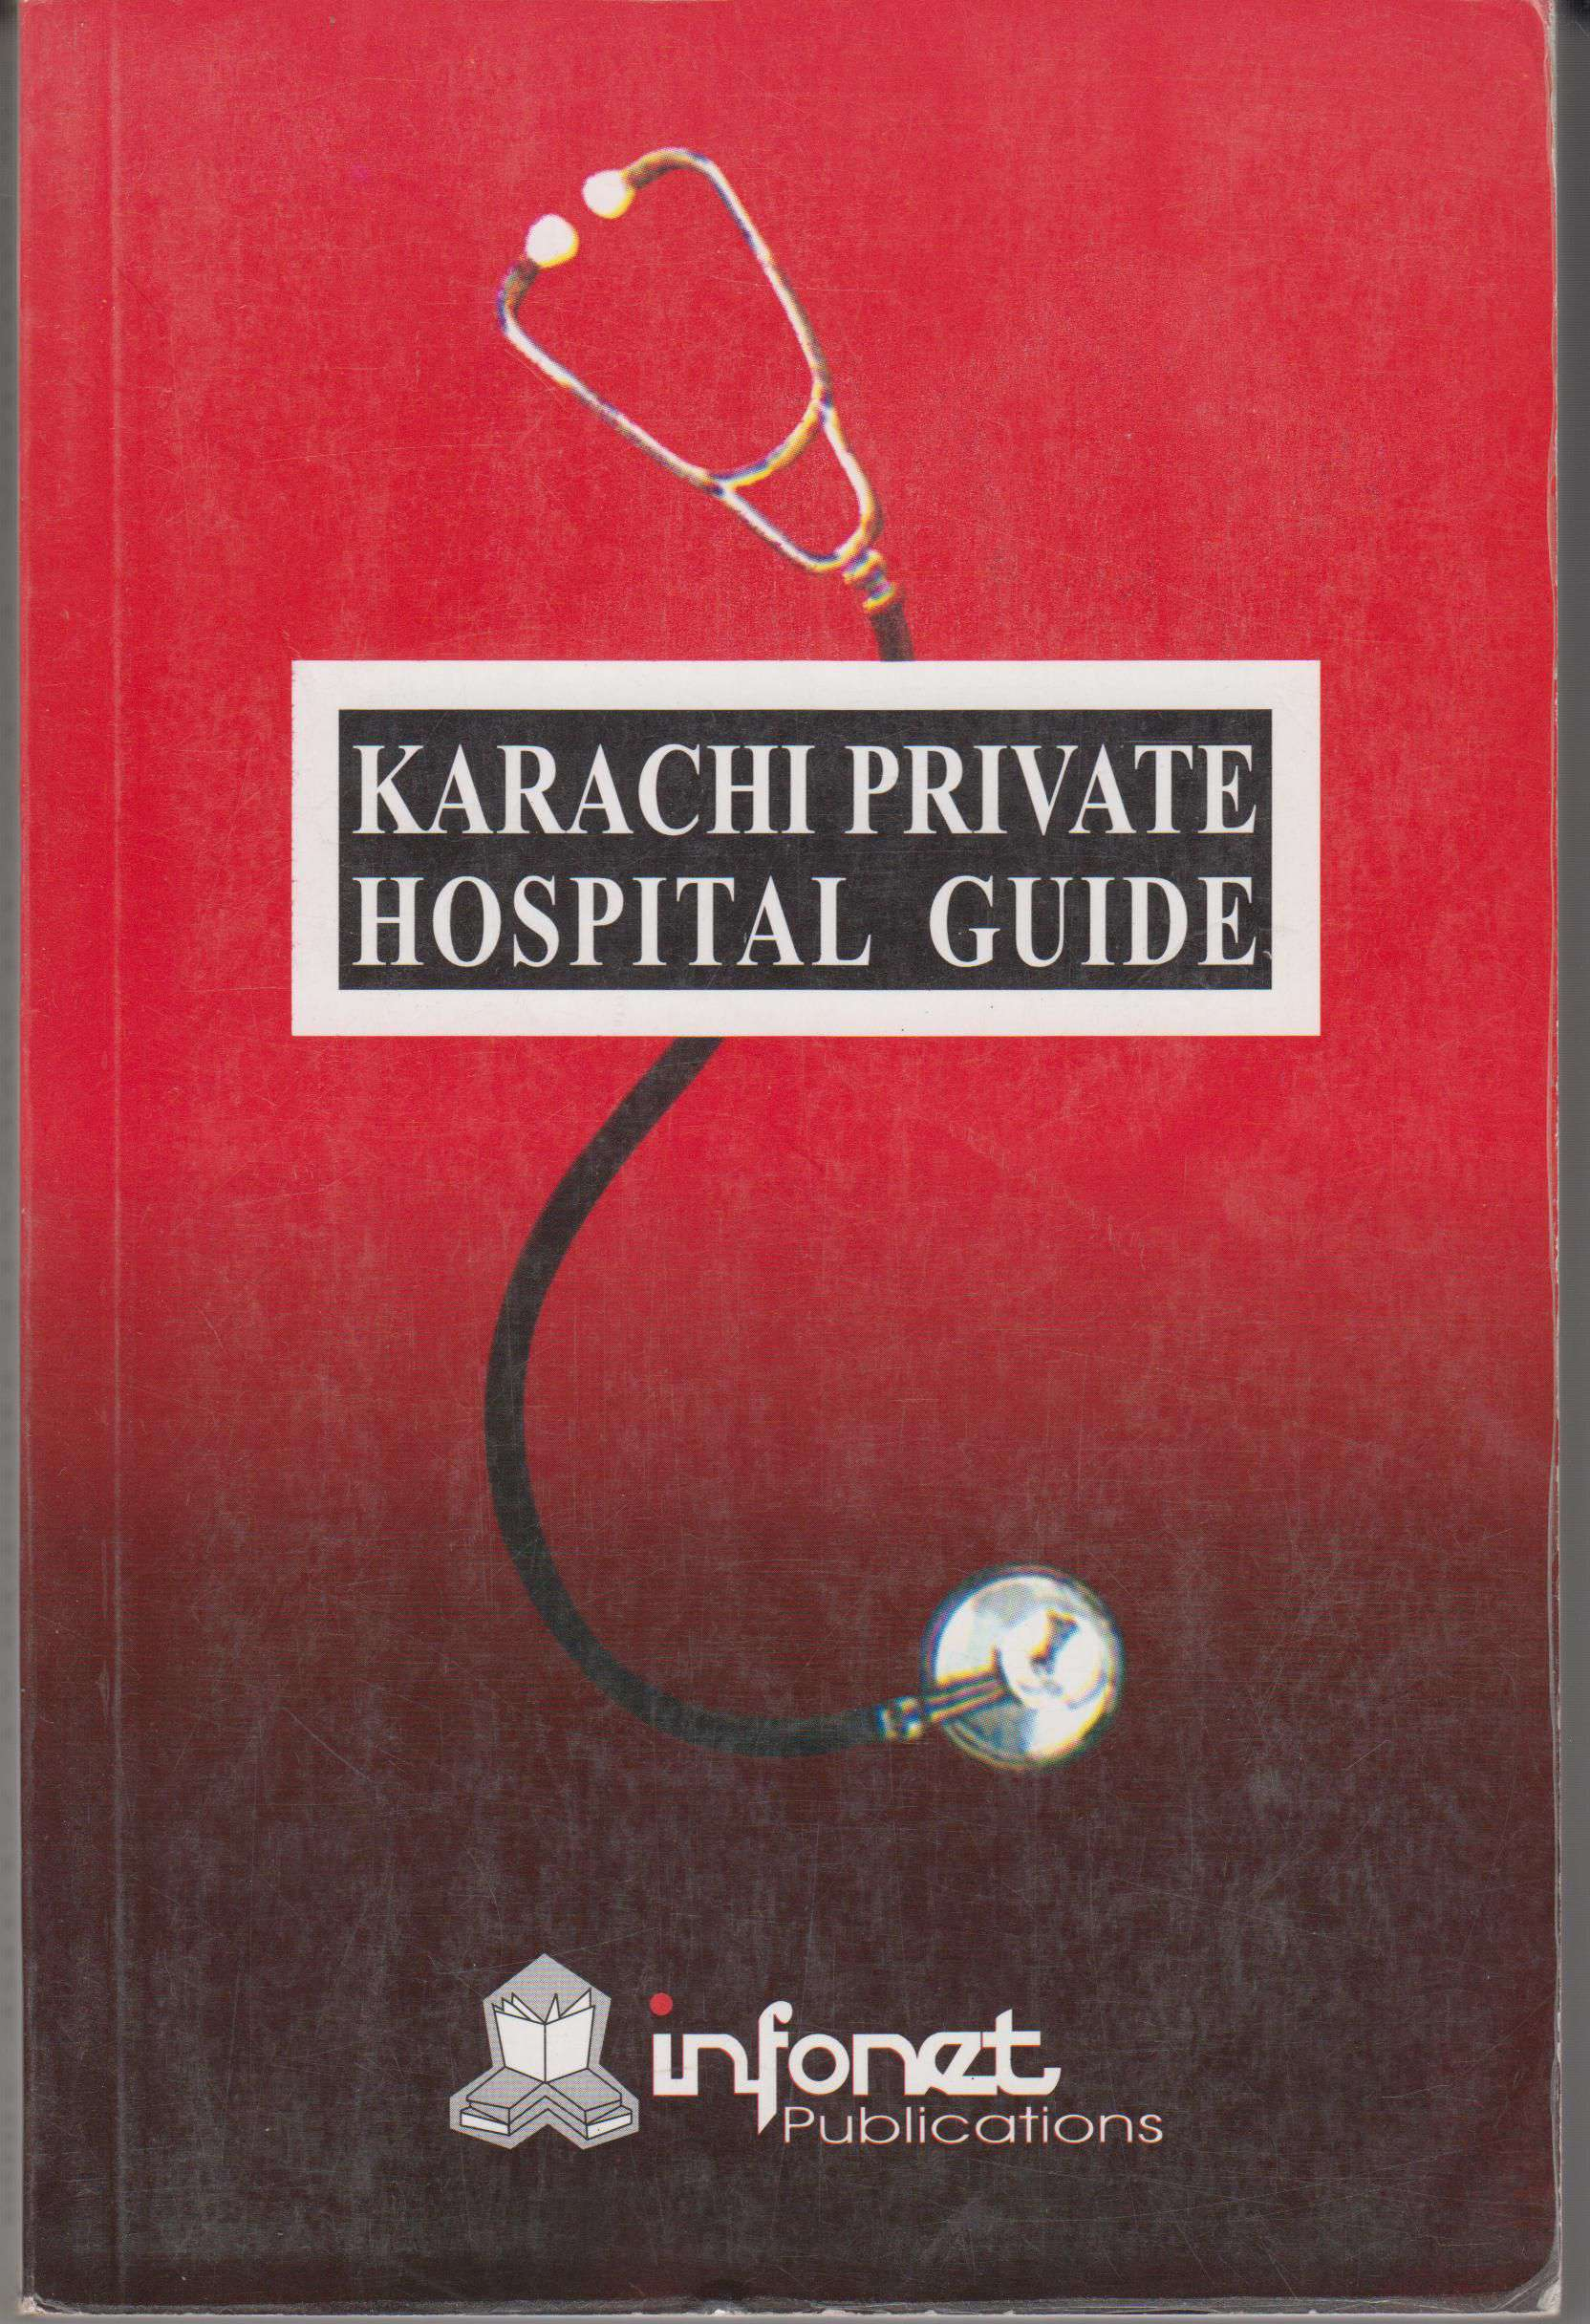 Karachi Prvate Hospital Guide